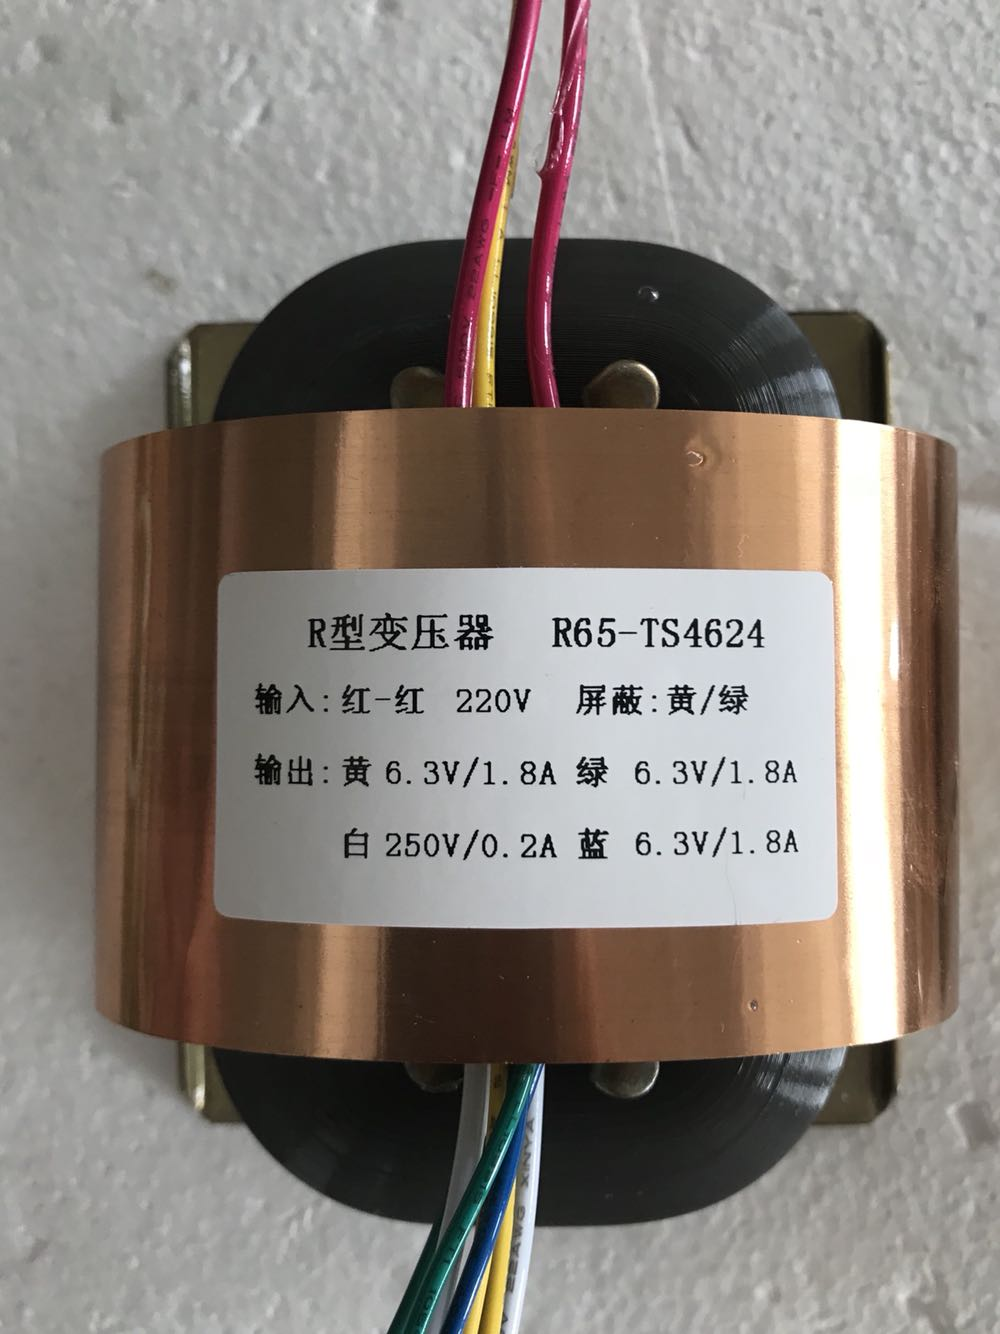 3 6 3V 1 8A 250V 0 2A R Core Transformer R65 custom transformer 220V with